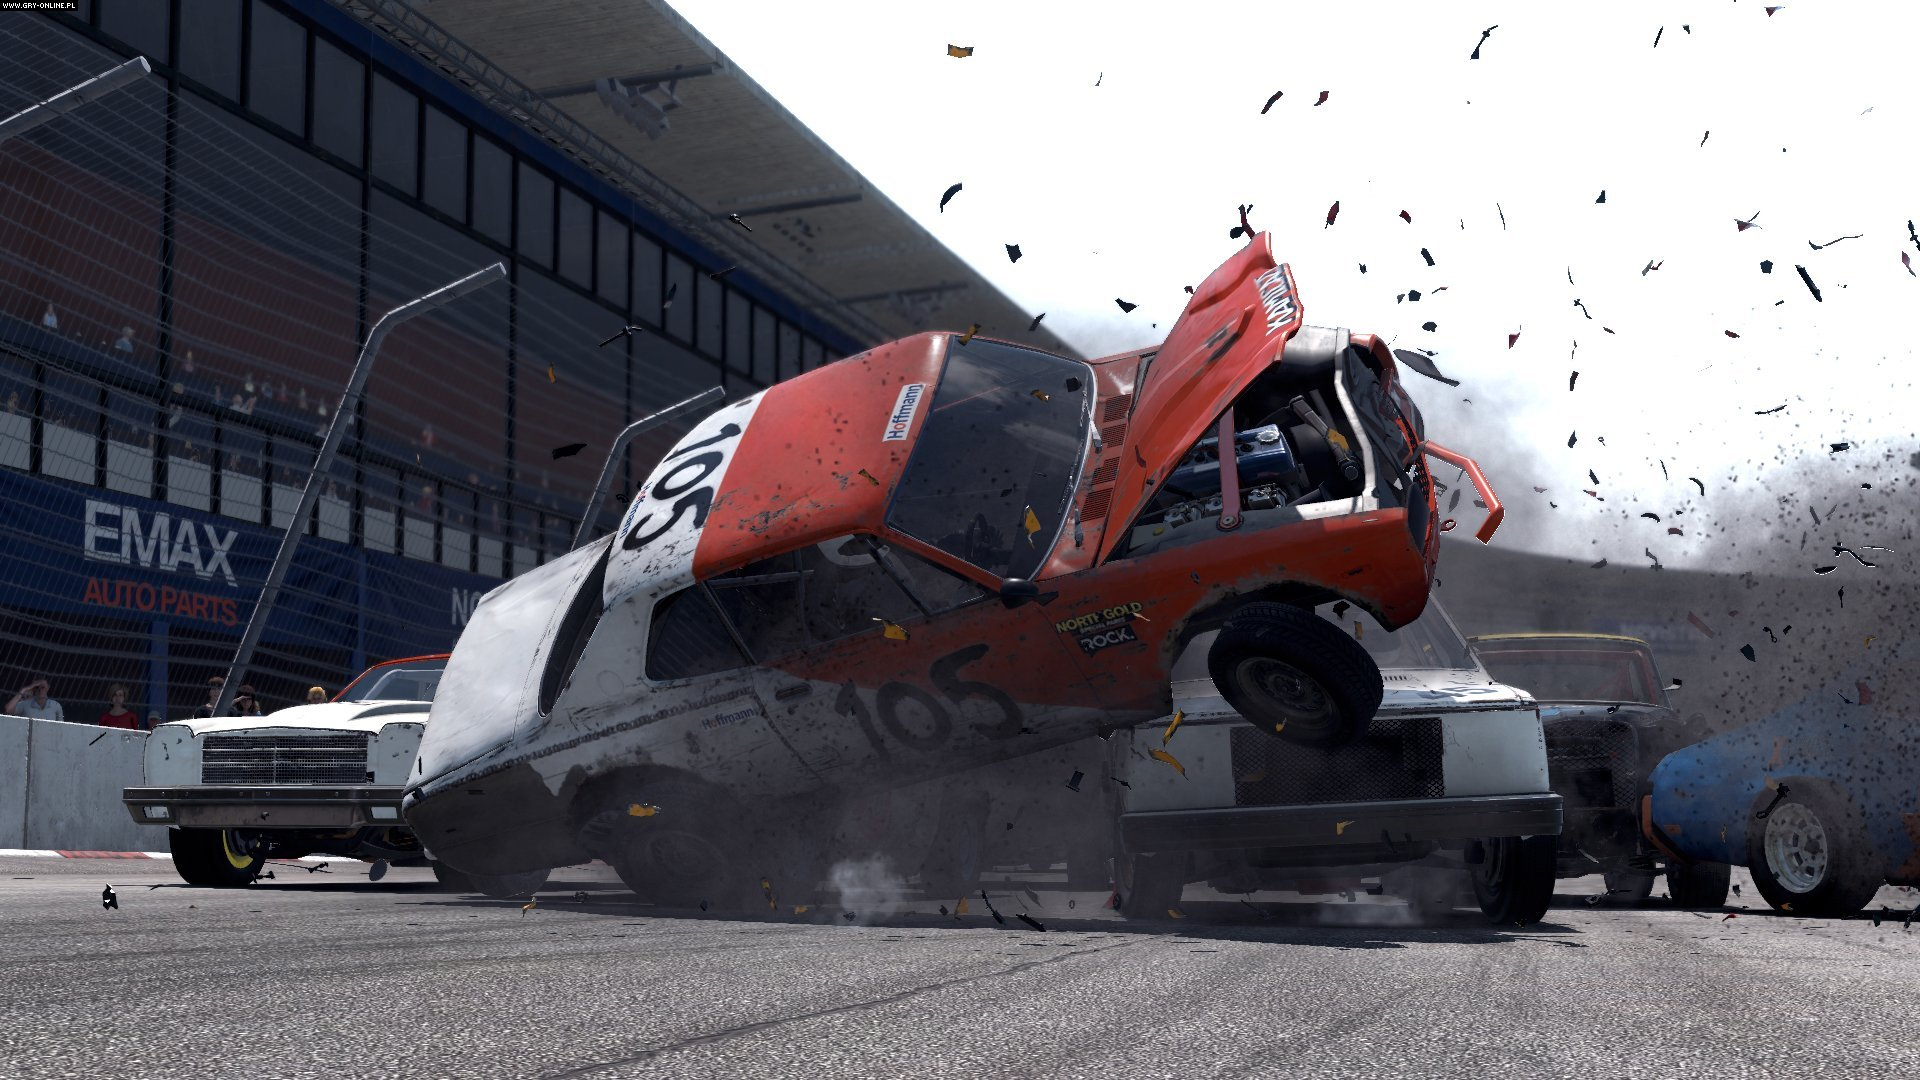 Wreckfest PC, PS4, XONE Games Image 6/71, Bugbear Entertainment, THQ Nordic / Nordic Games